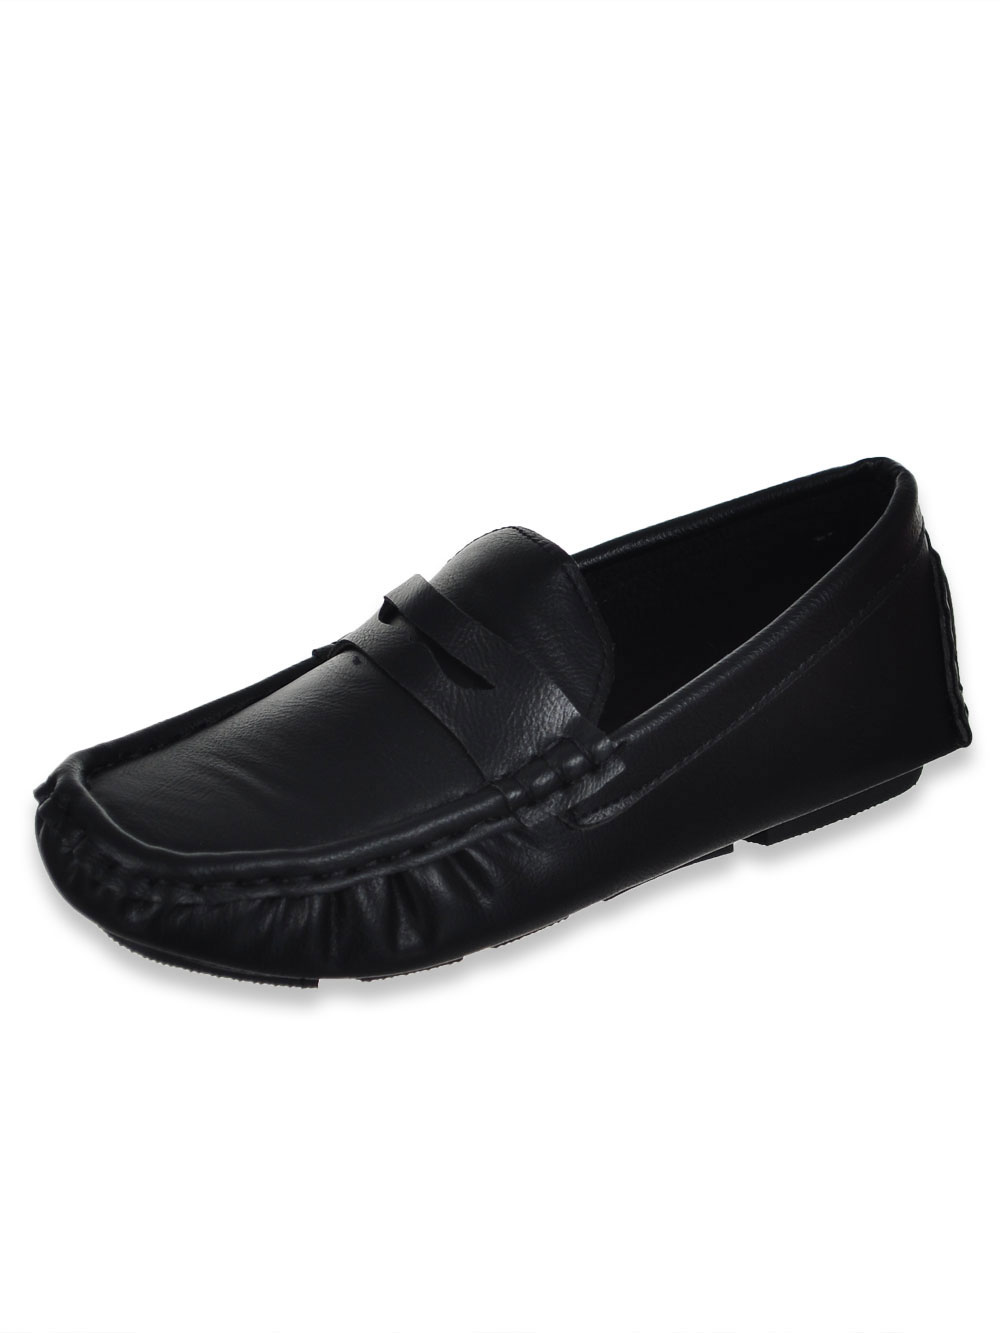 Shoes Penny Loafers